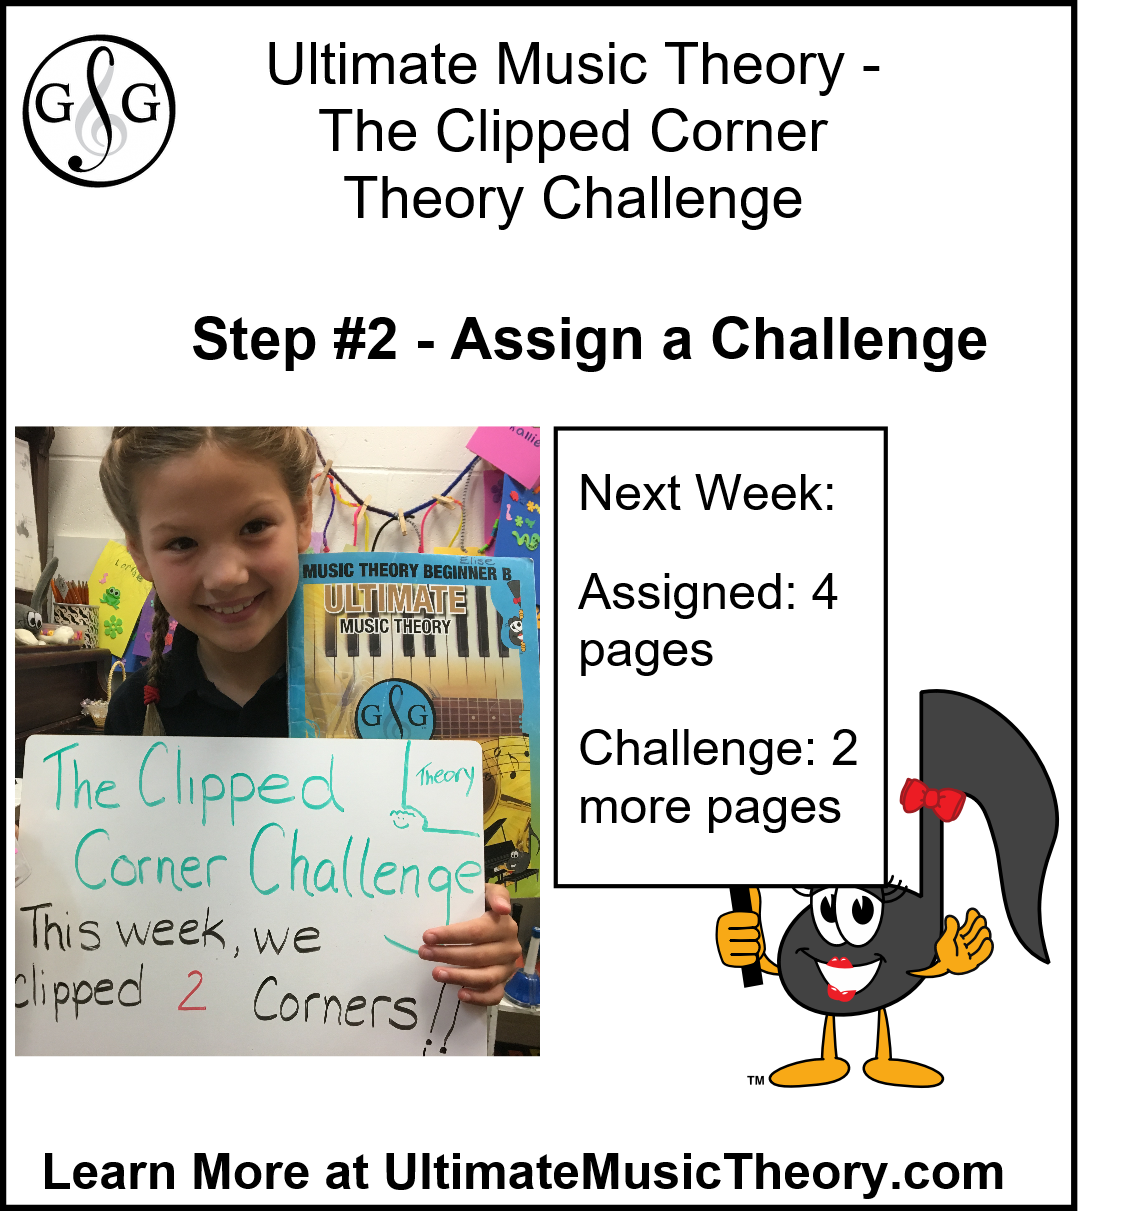 Ultimate Music Theory Clipped Corner Theory Challenge